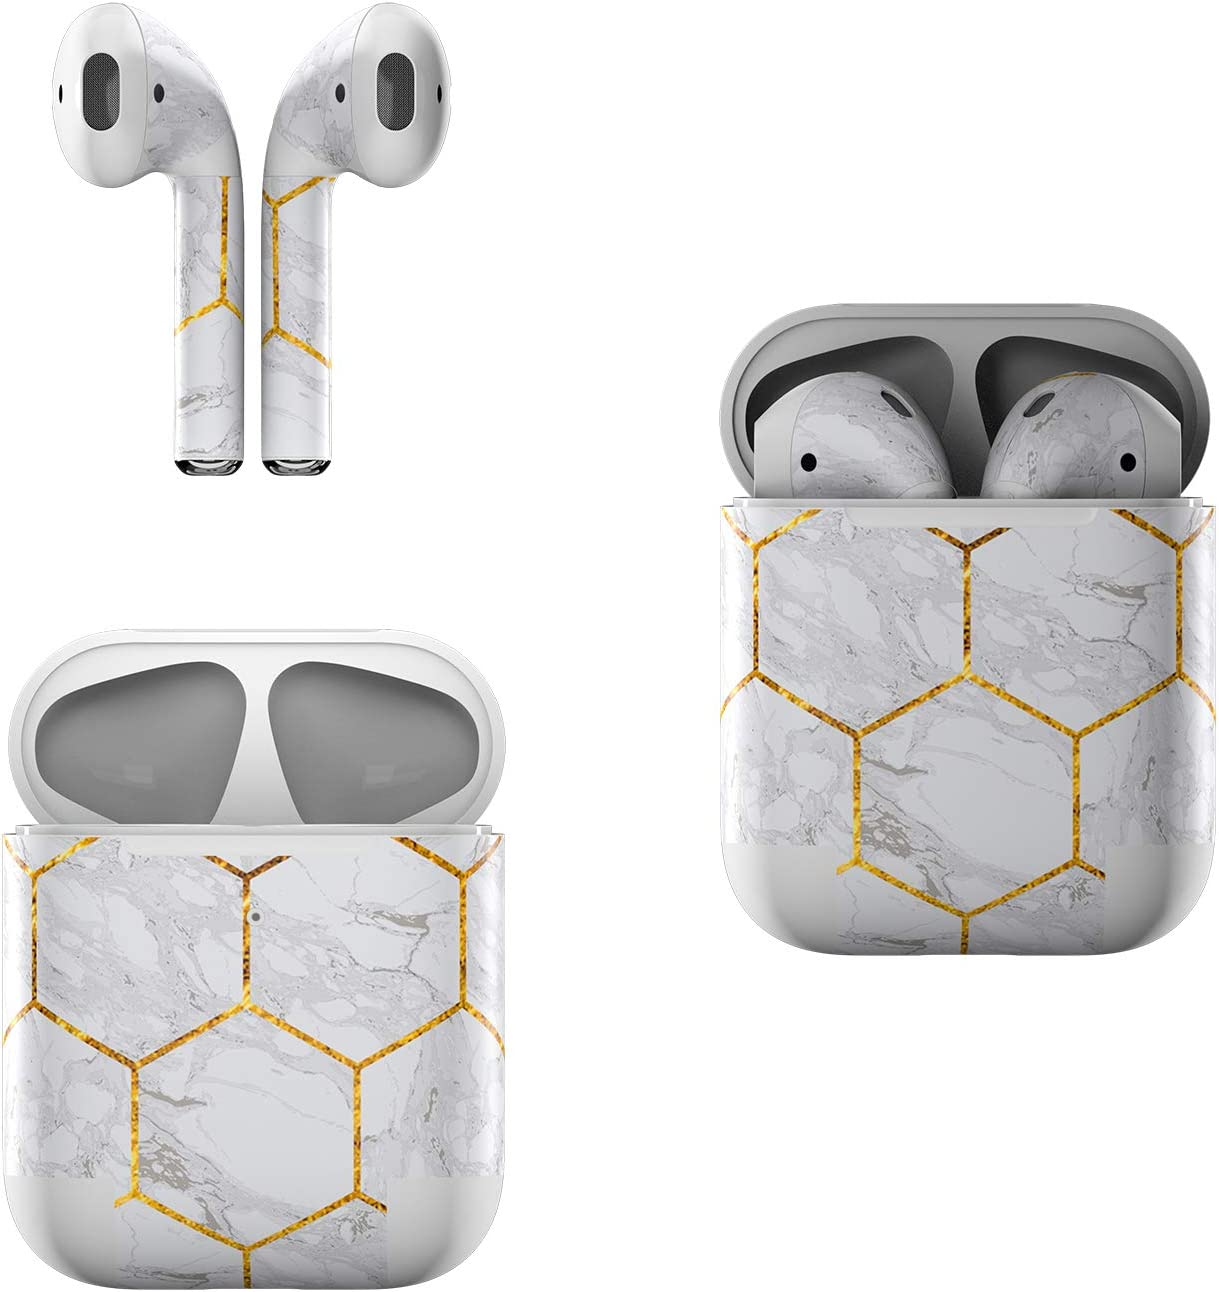 Skin Decals for Apple AirPods - Honey Marble - Sticker Wrap Fits 1st and 2nd Generation